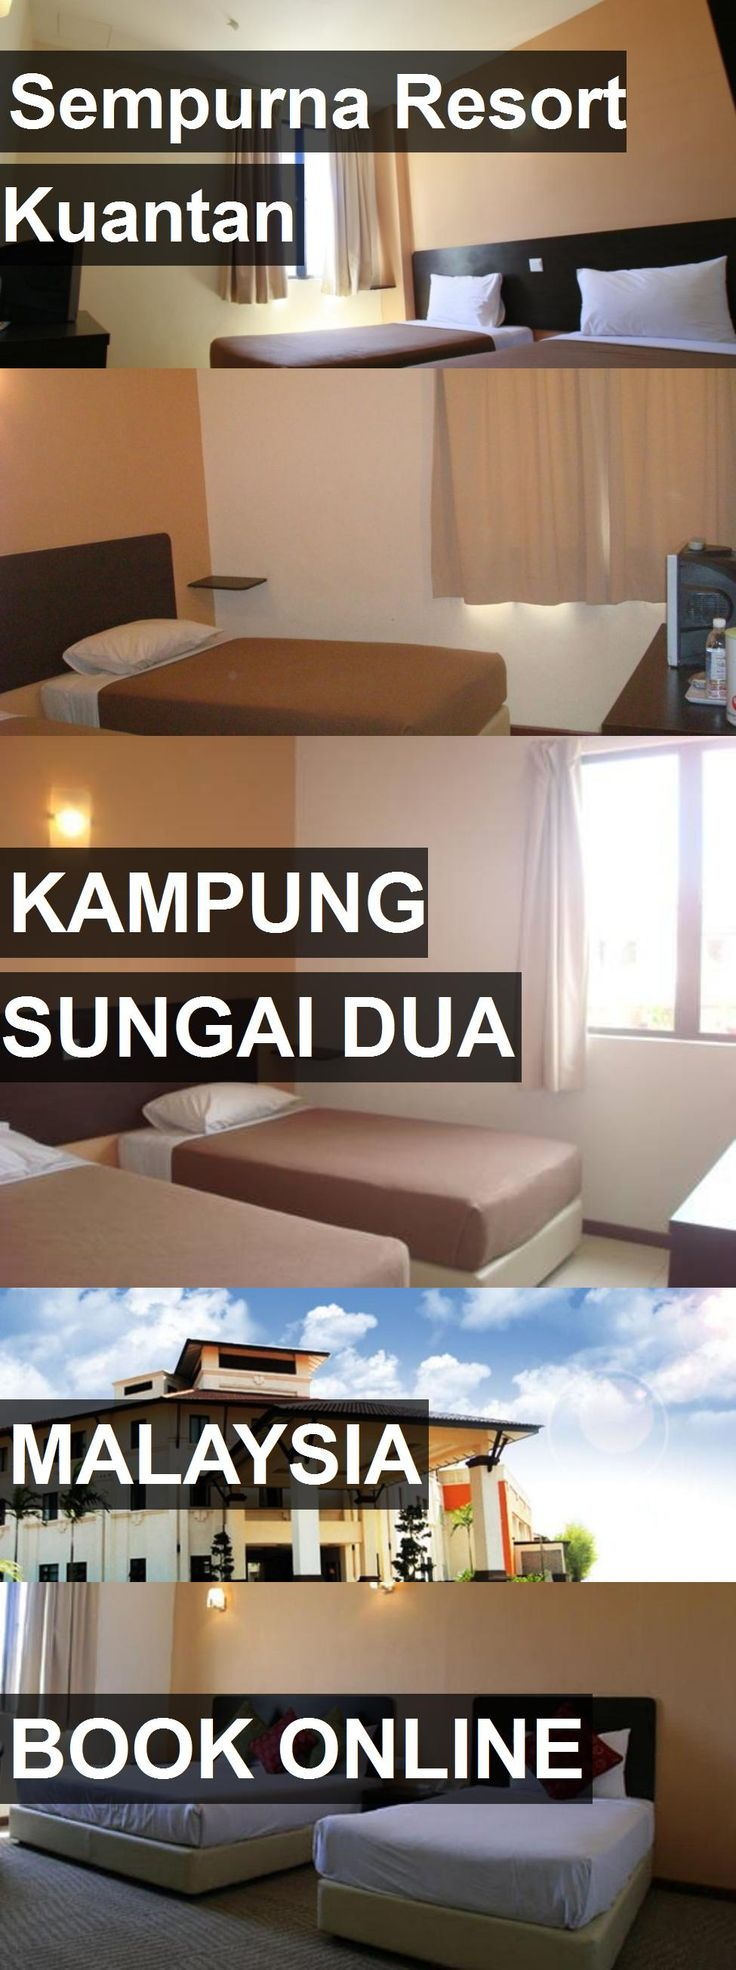 Hotel Sempurna Resort Kuantan in Kampung Sungai Dua, Malaysia. For more information, photos, reviews and best prices please follow the link. #Malaysia #KampungSungaiDua #SempurnaResortKuantan #hotel #travel #vacation